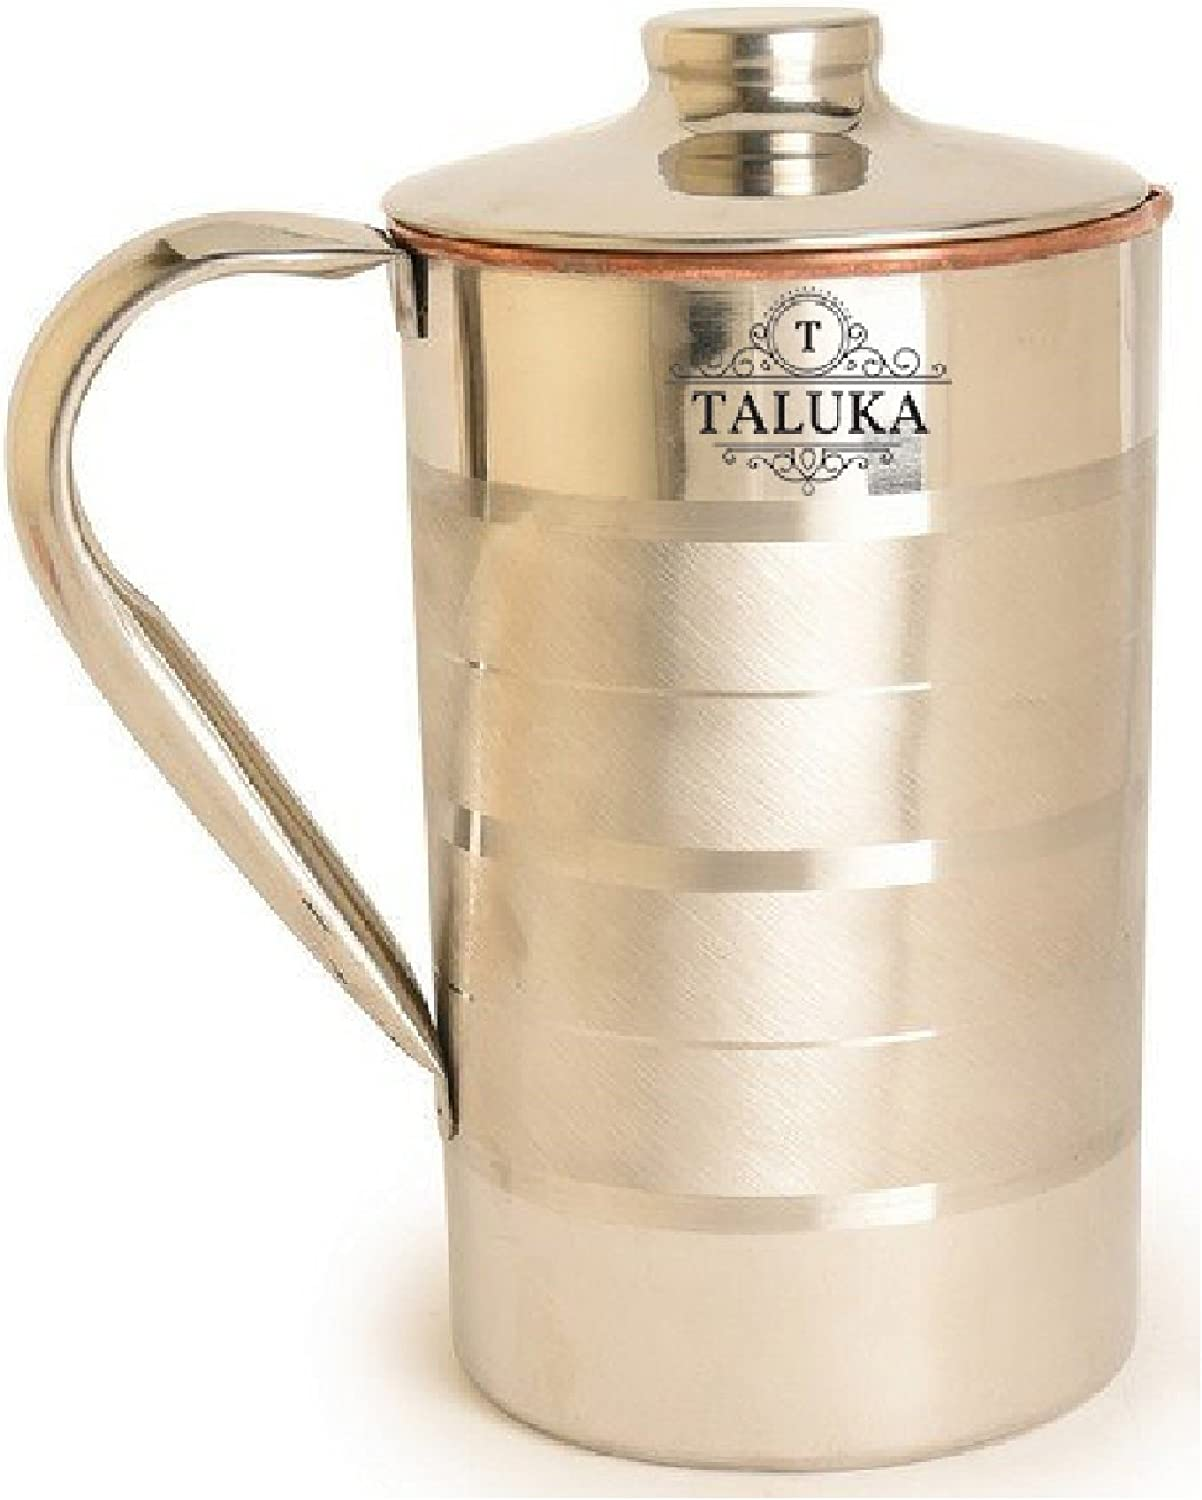 Taluka Copper Stainless Steel Jug, 1.5 Liter, 4.6 X 7.4 Inch, Silver